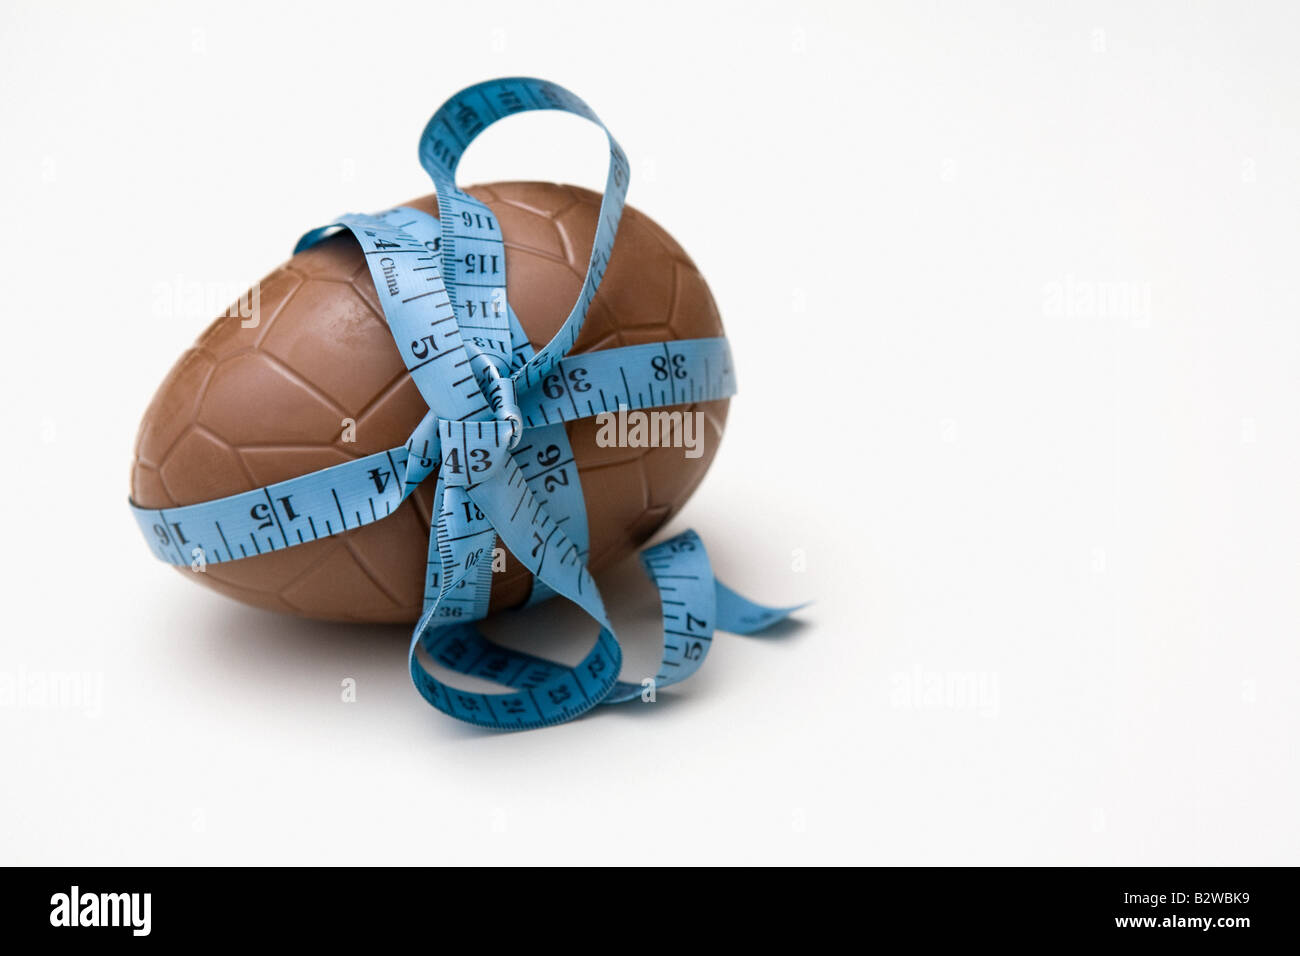 A tape measure tied round an easter egg - Stock Image